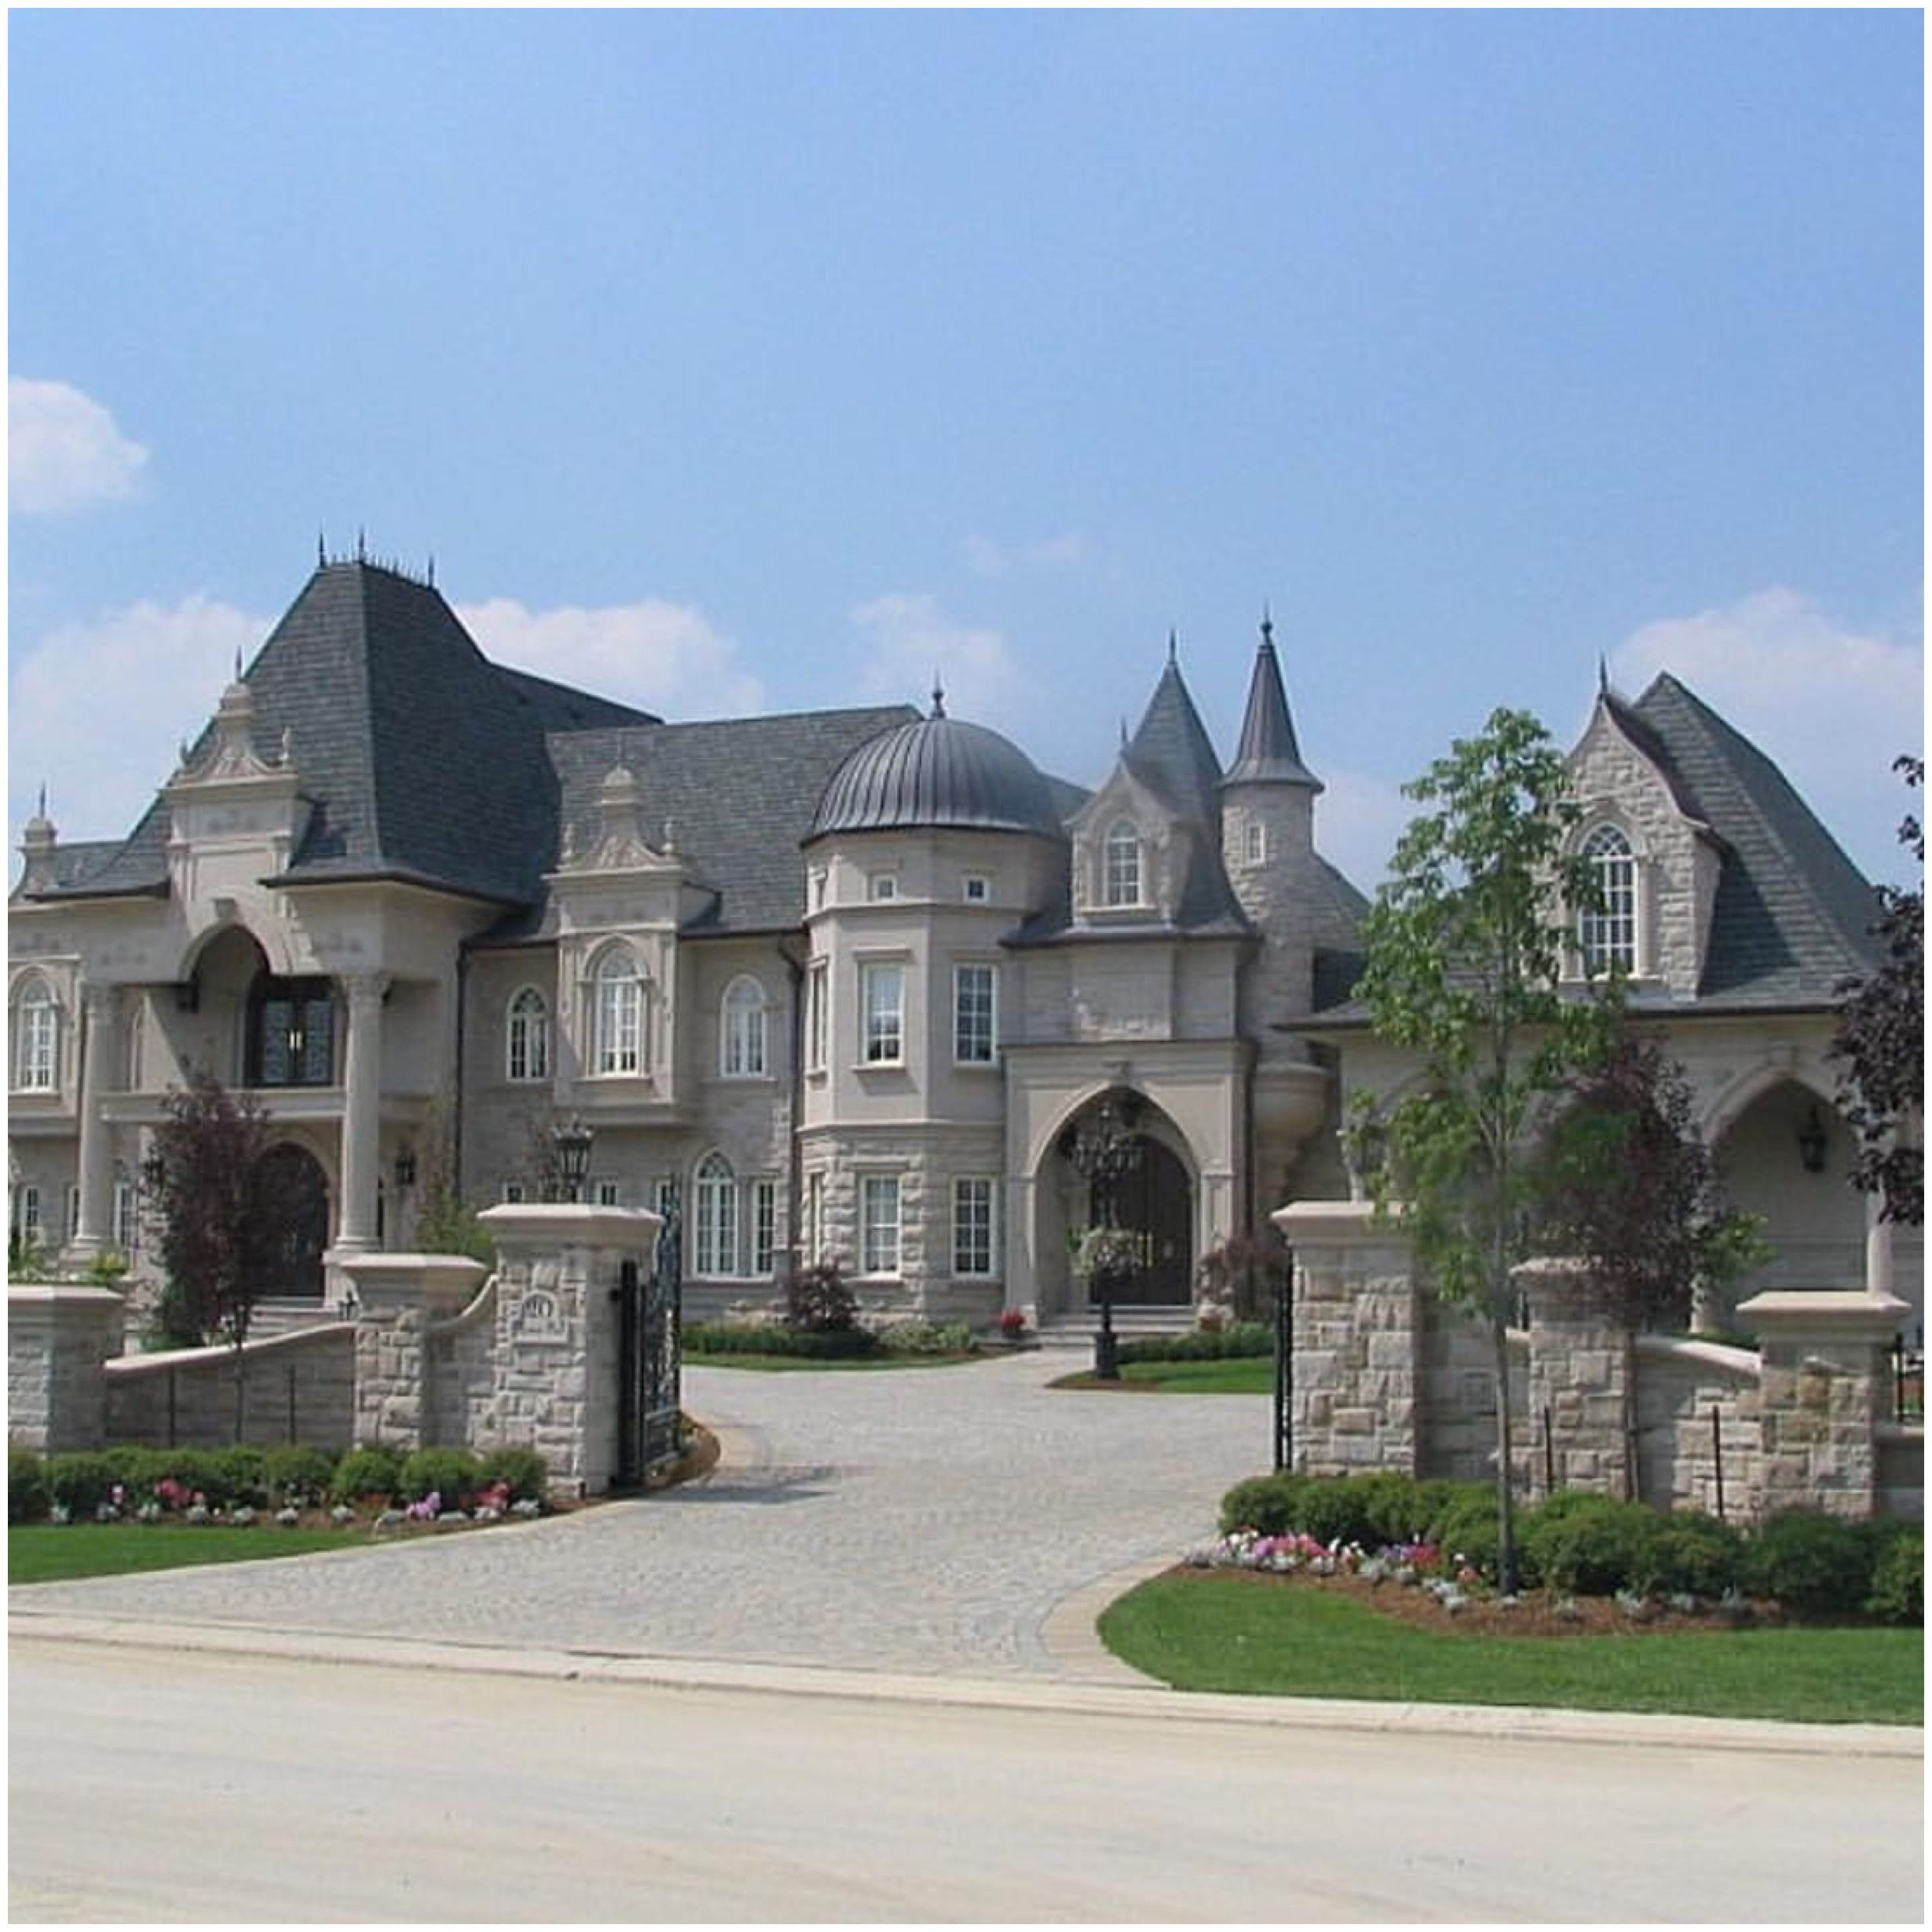 Zillow Nj Homes For Sale: OMG!! This Would Take Years To Build. Looks Great 👍 In